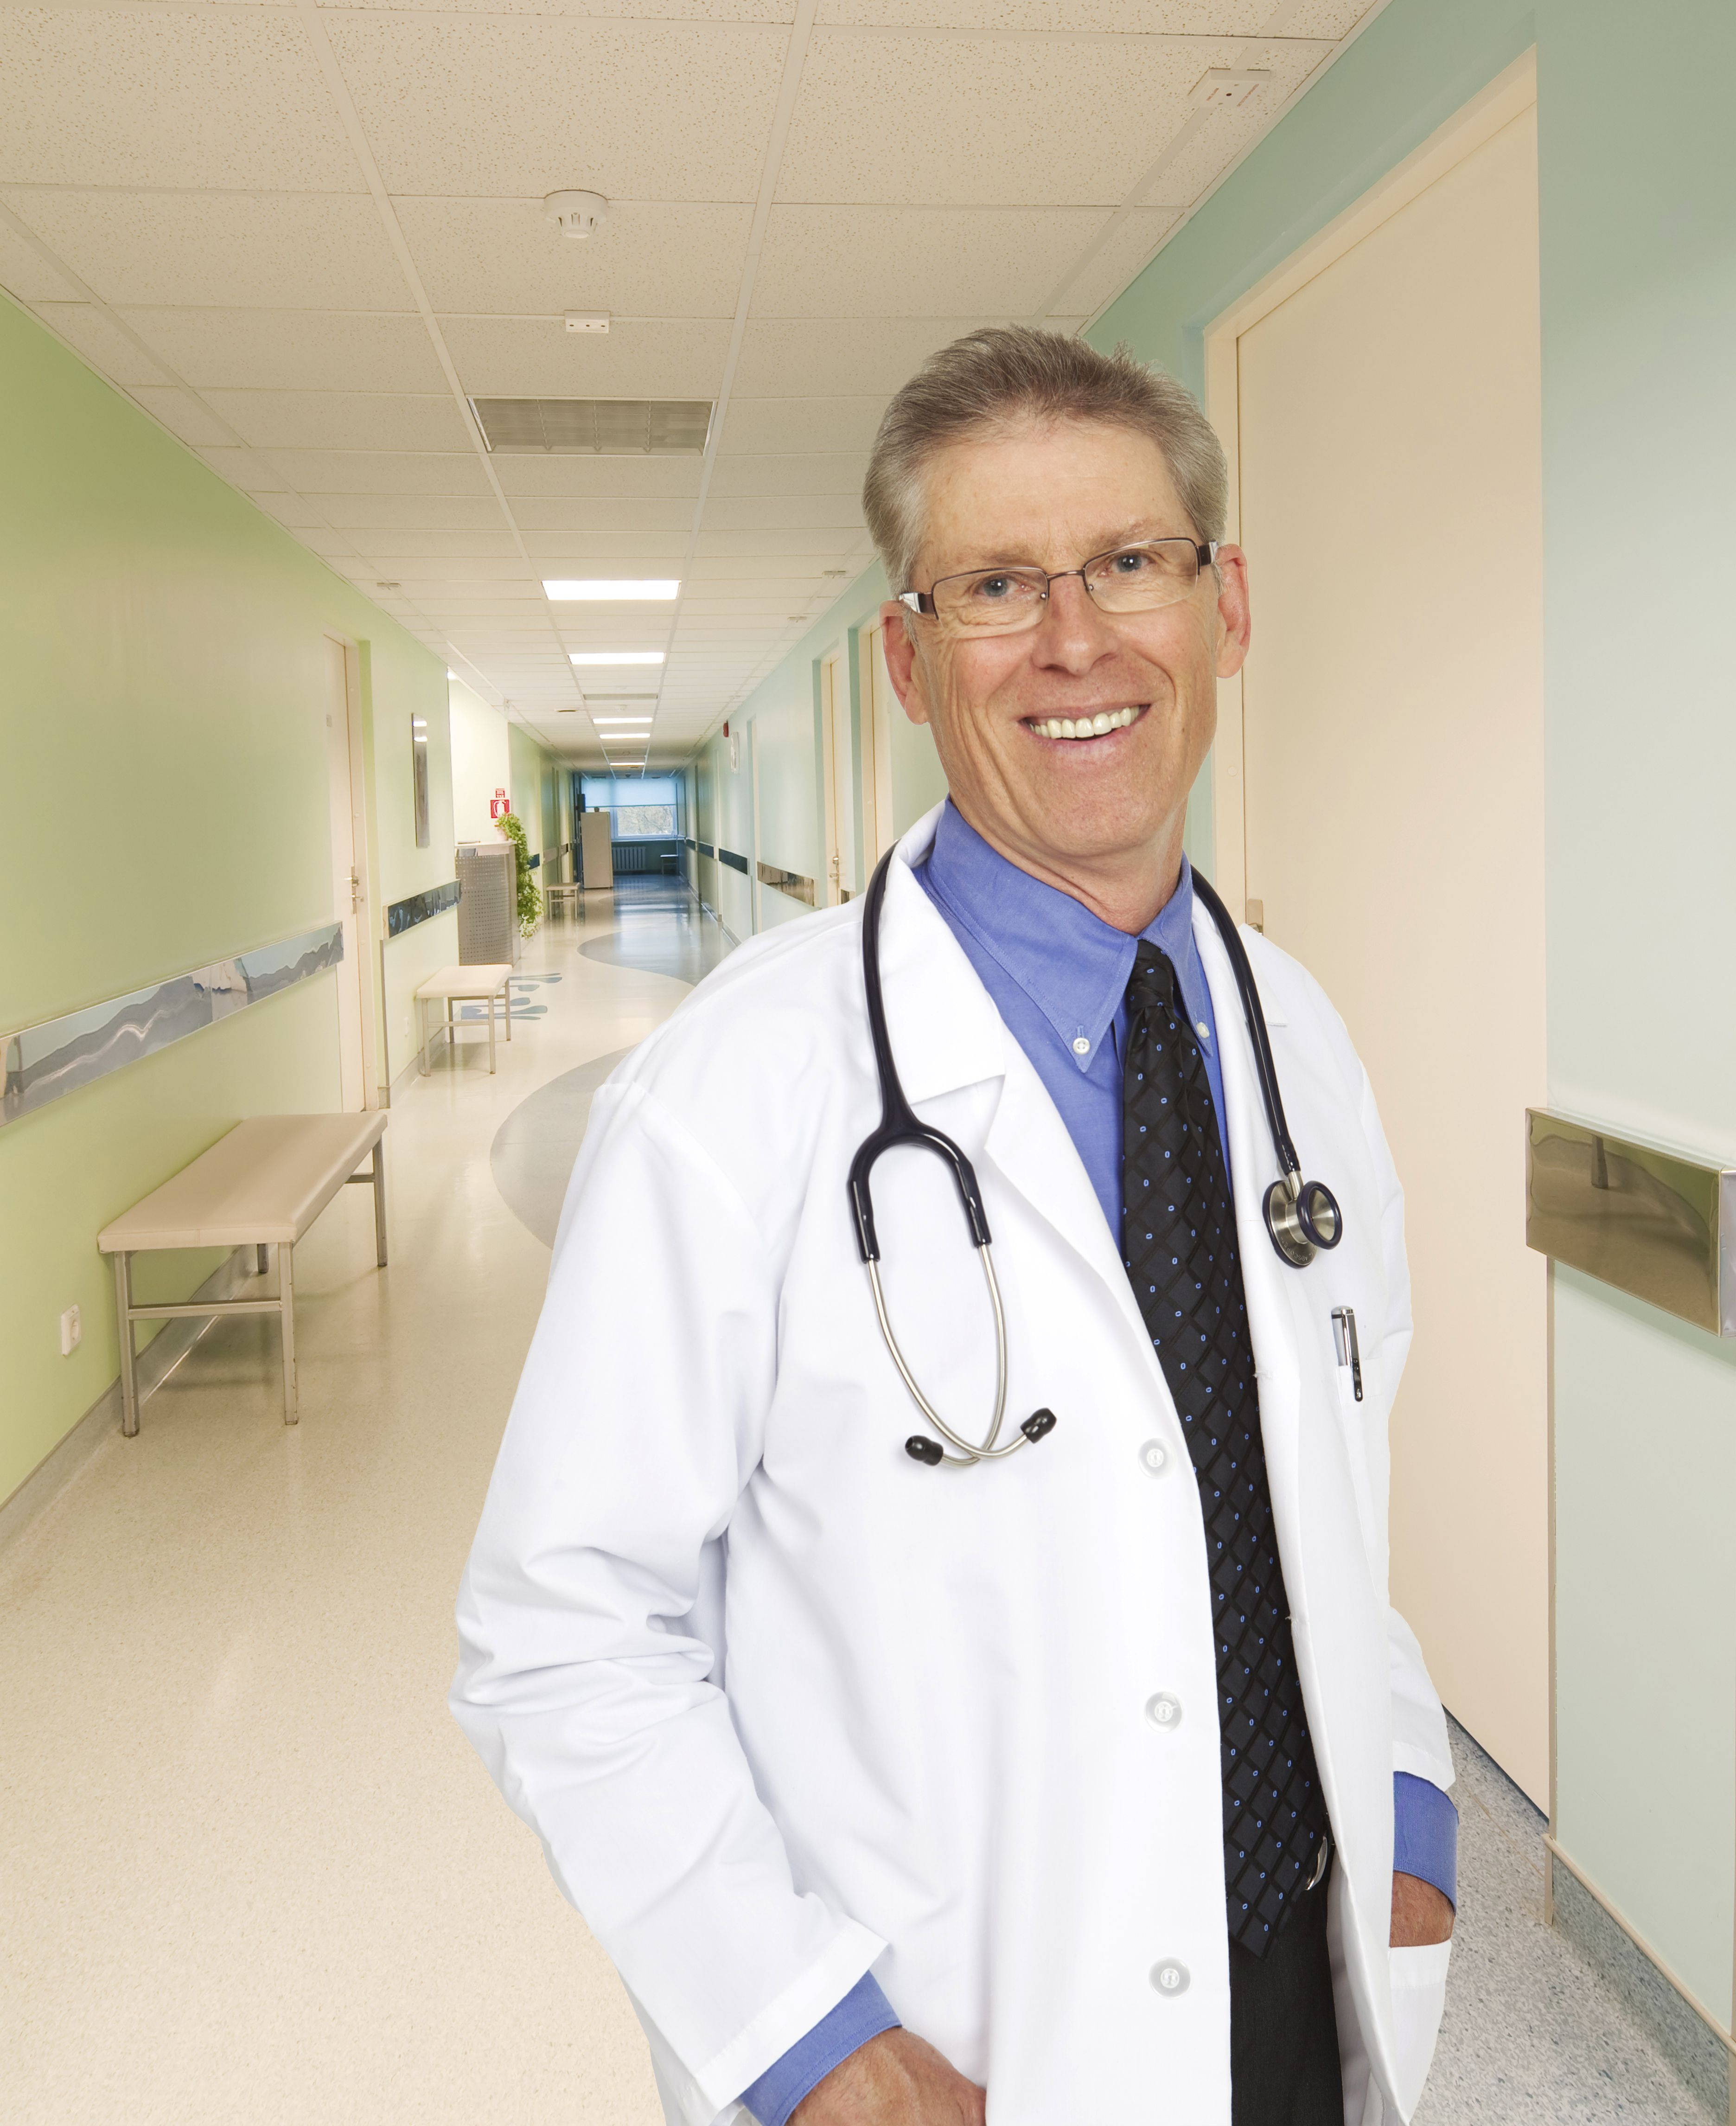 Comphealth has locum tenens physician jobs in these